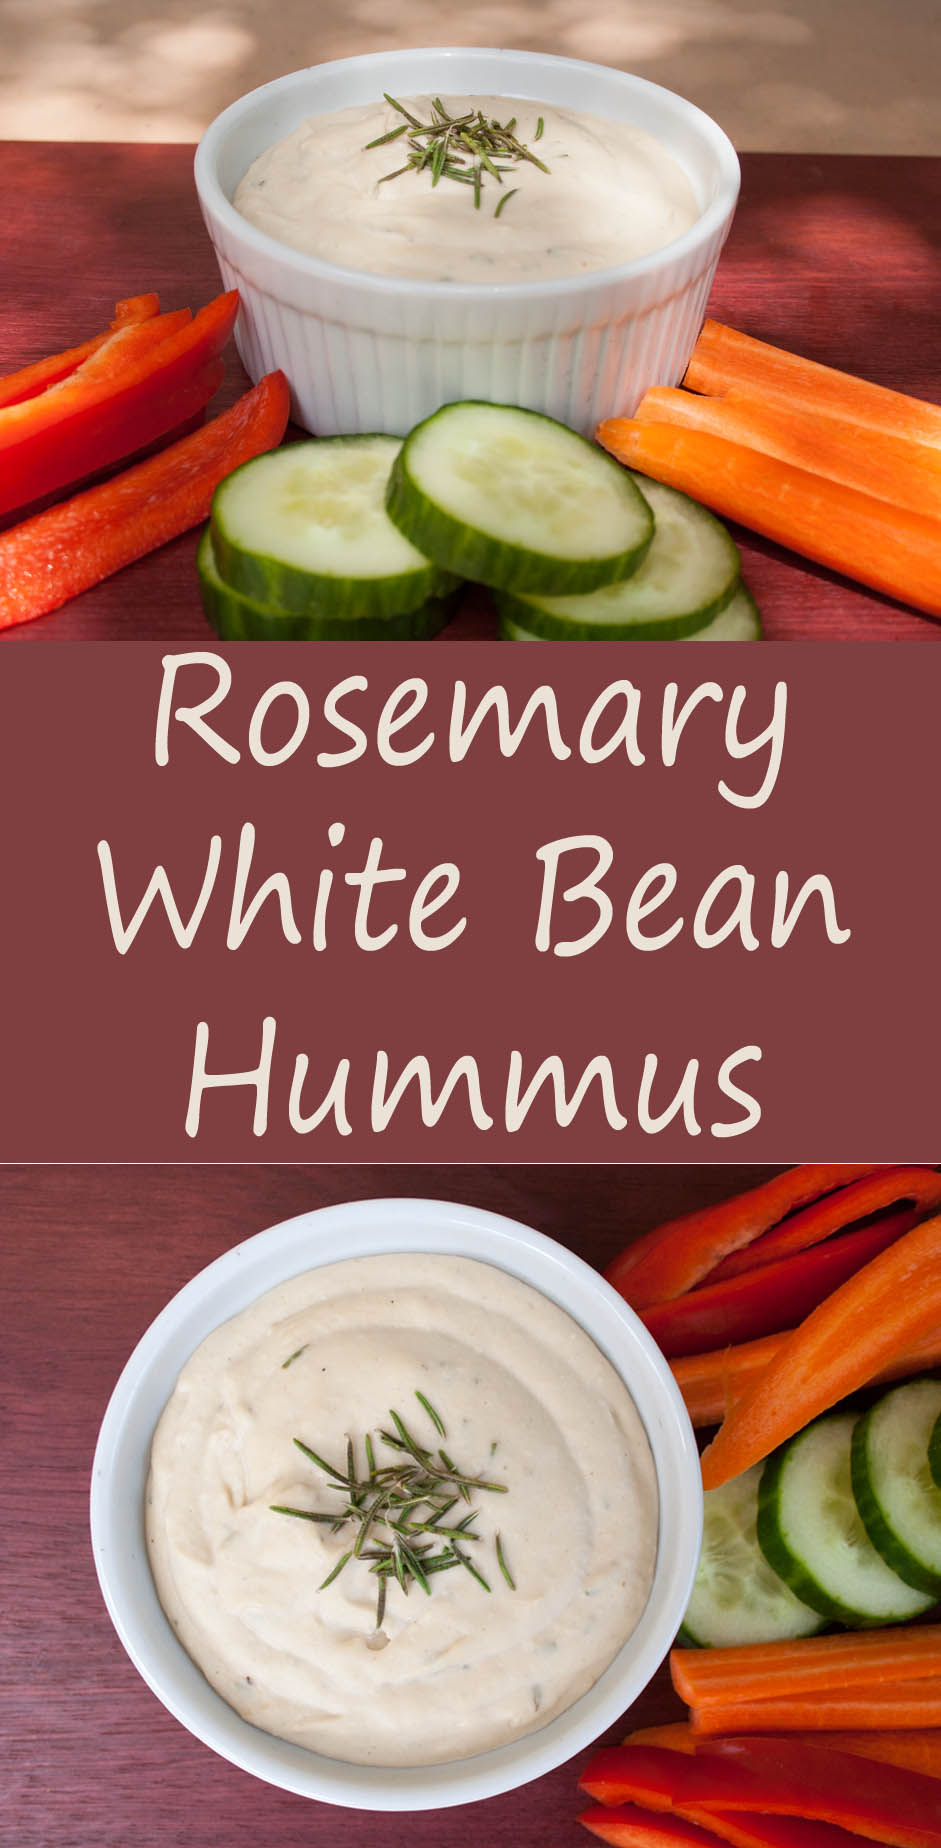 Rosemary White Bean Hummus collage photo with text.